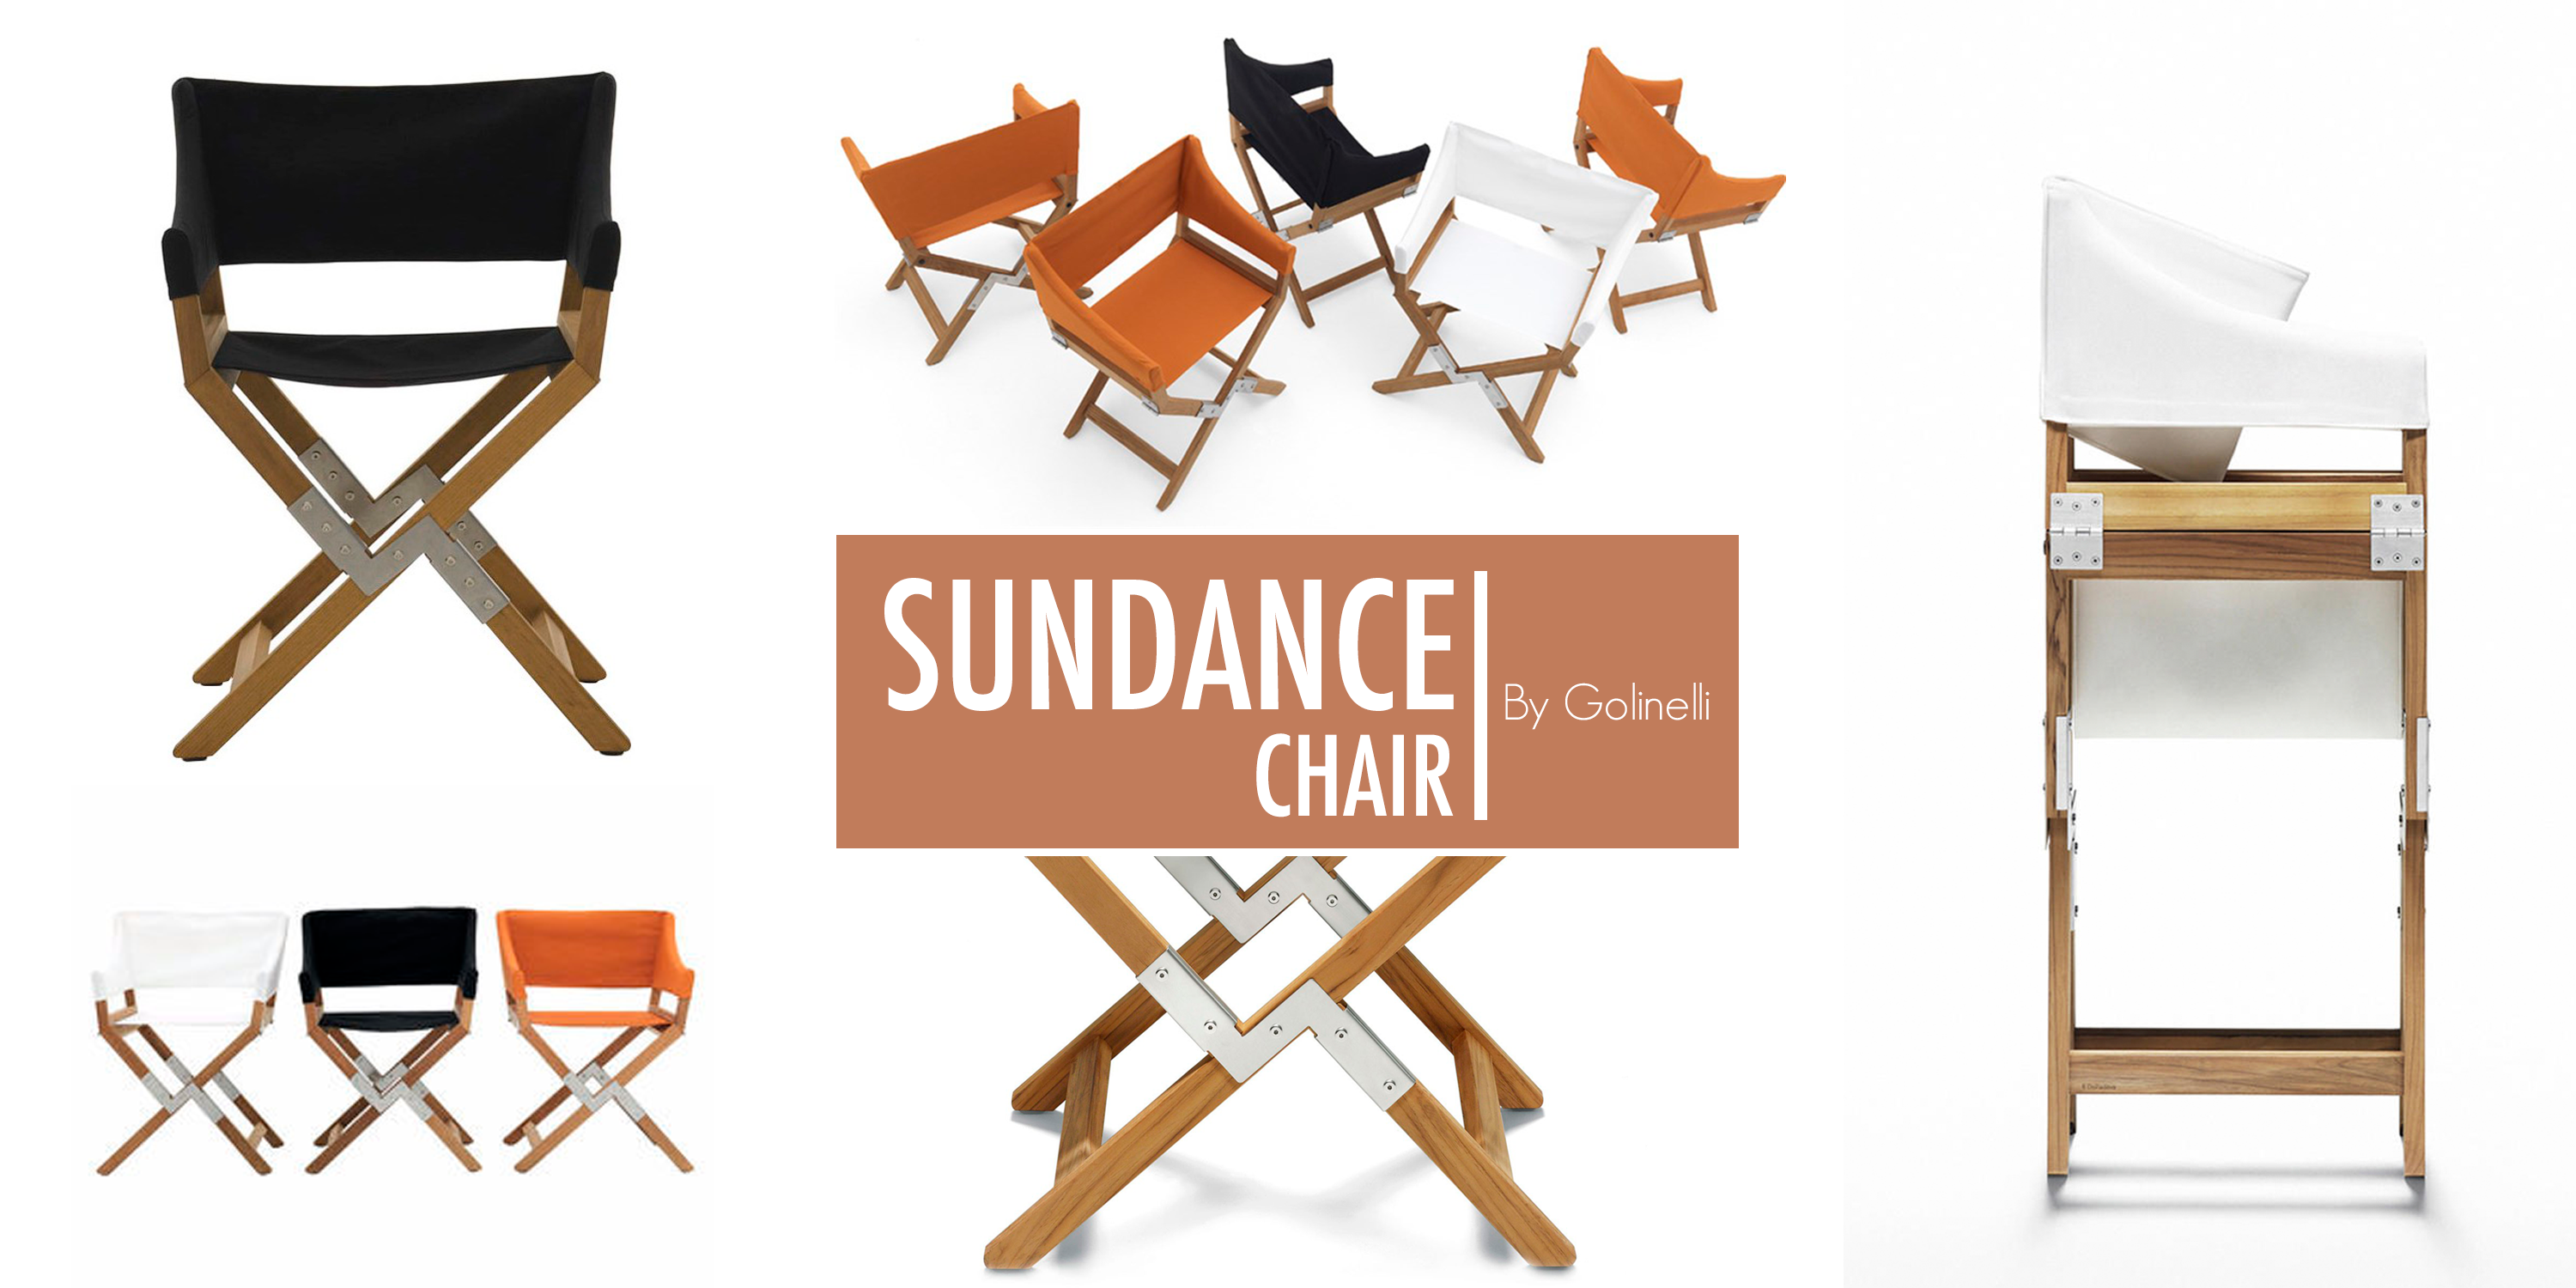 ``Sundance Chair`` by Golinelli